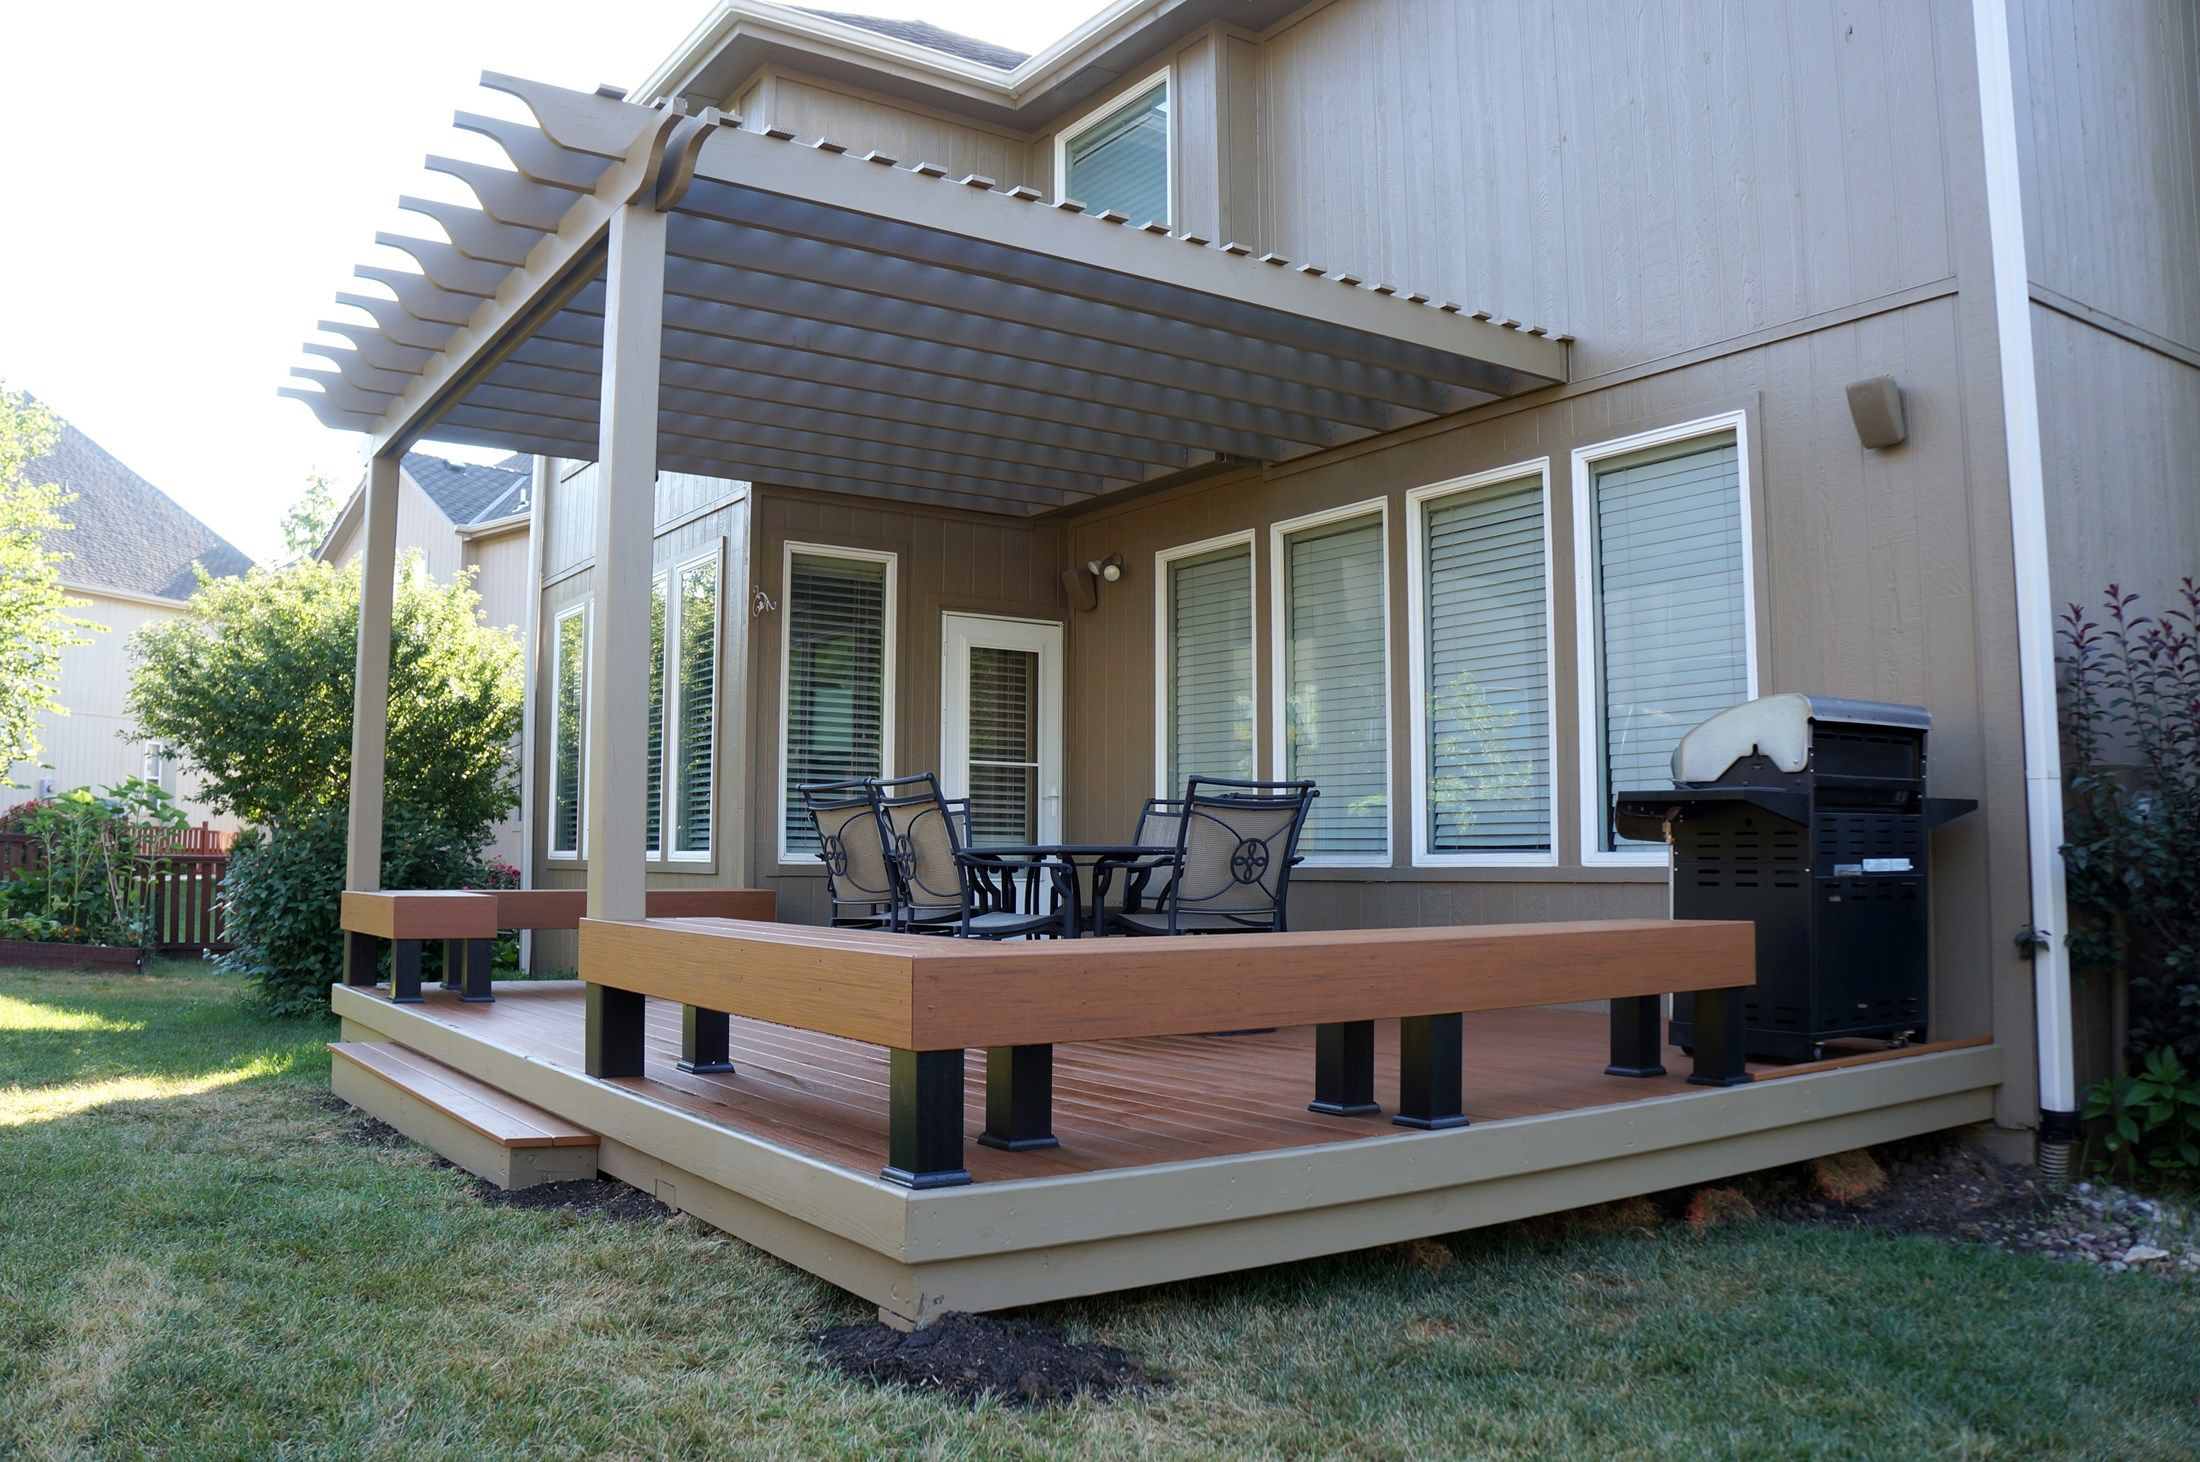 TimberTech Deck 2 - Picture 5162